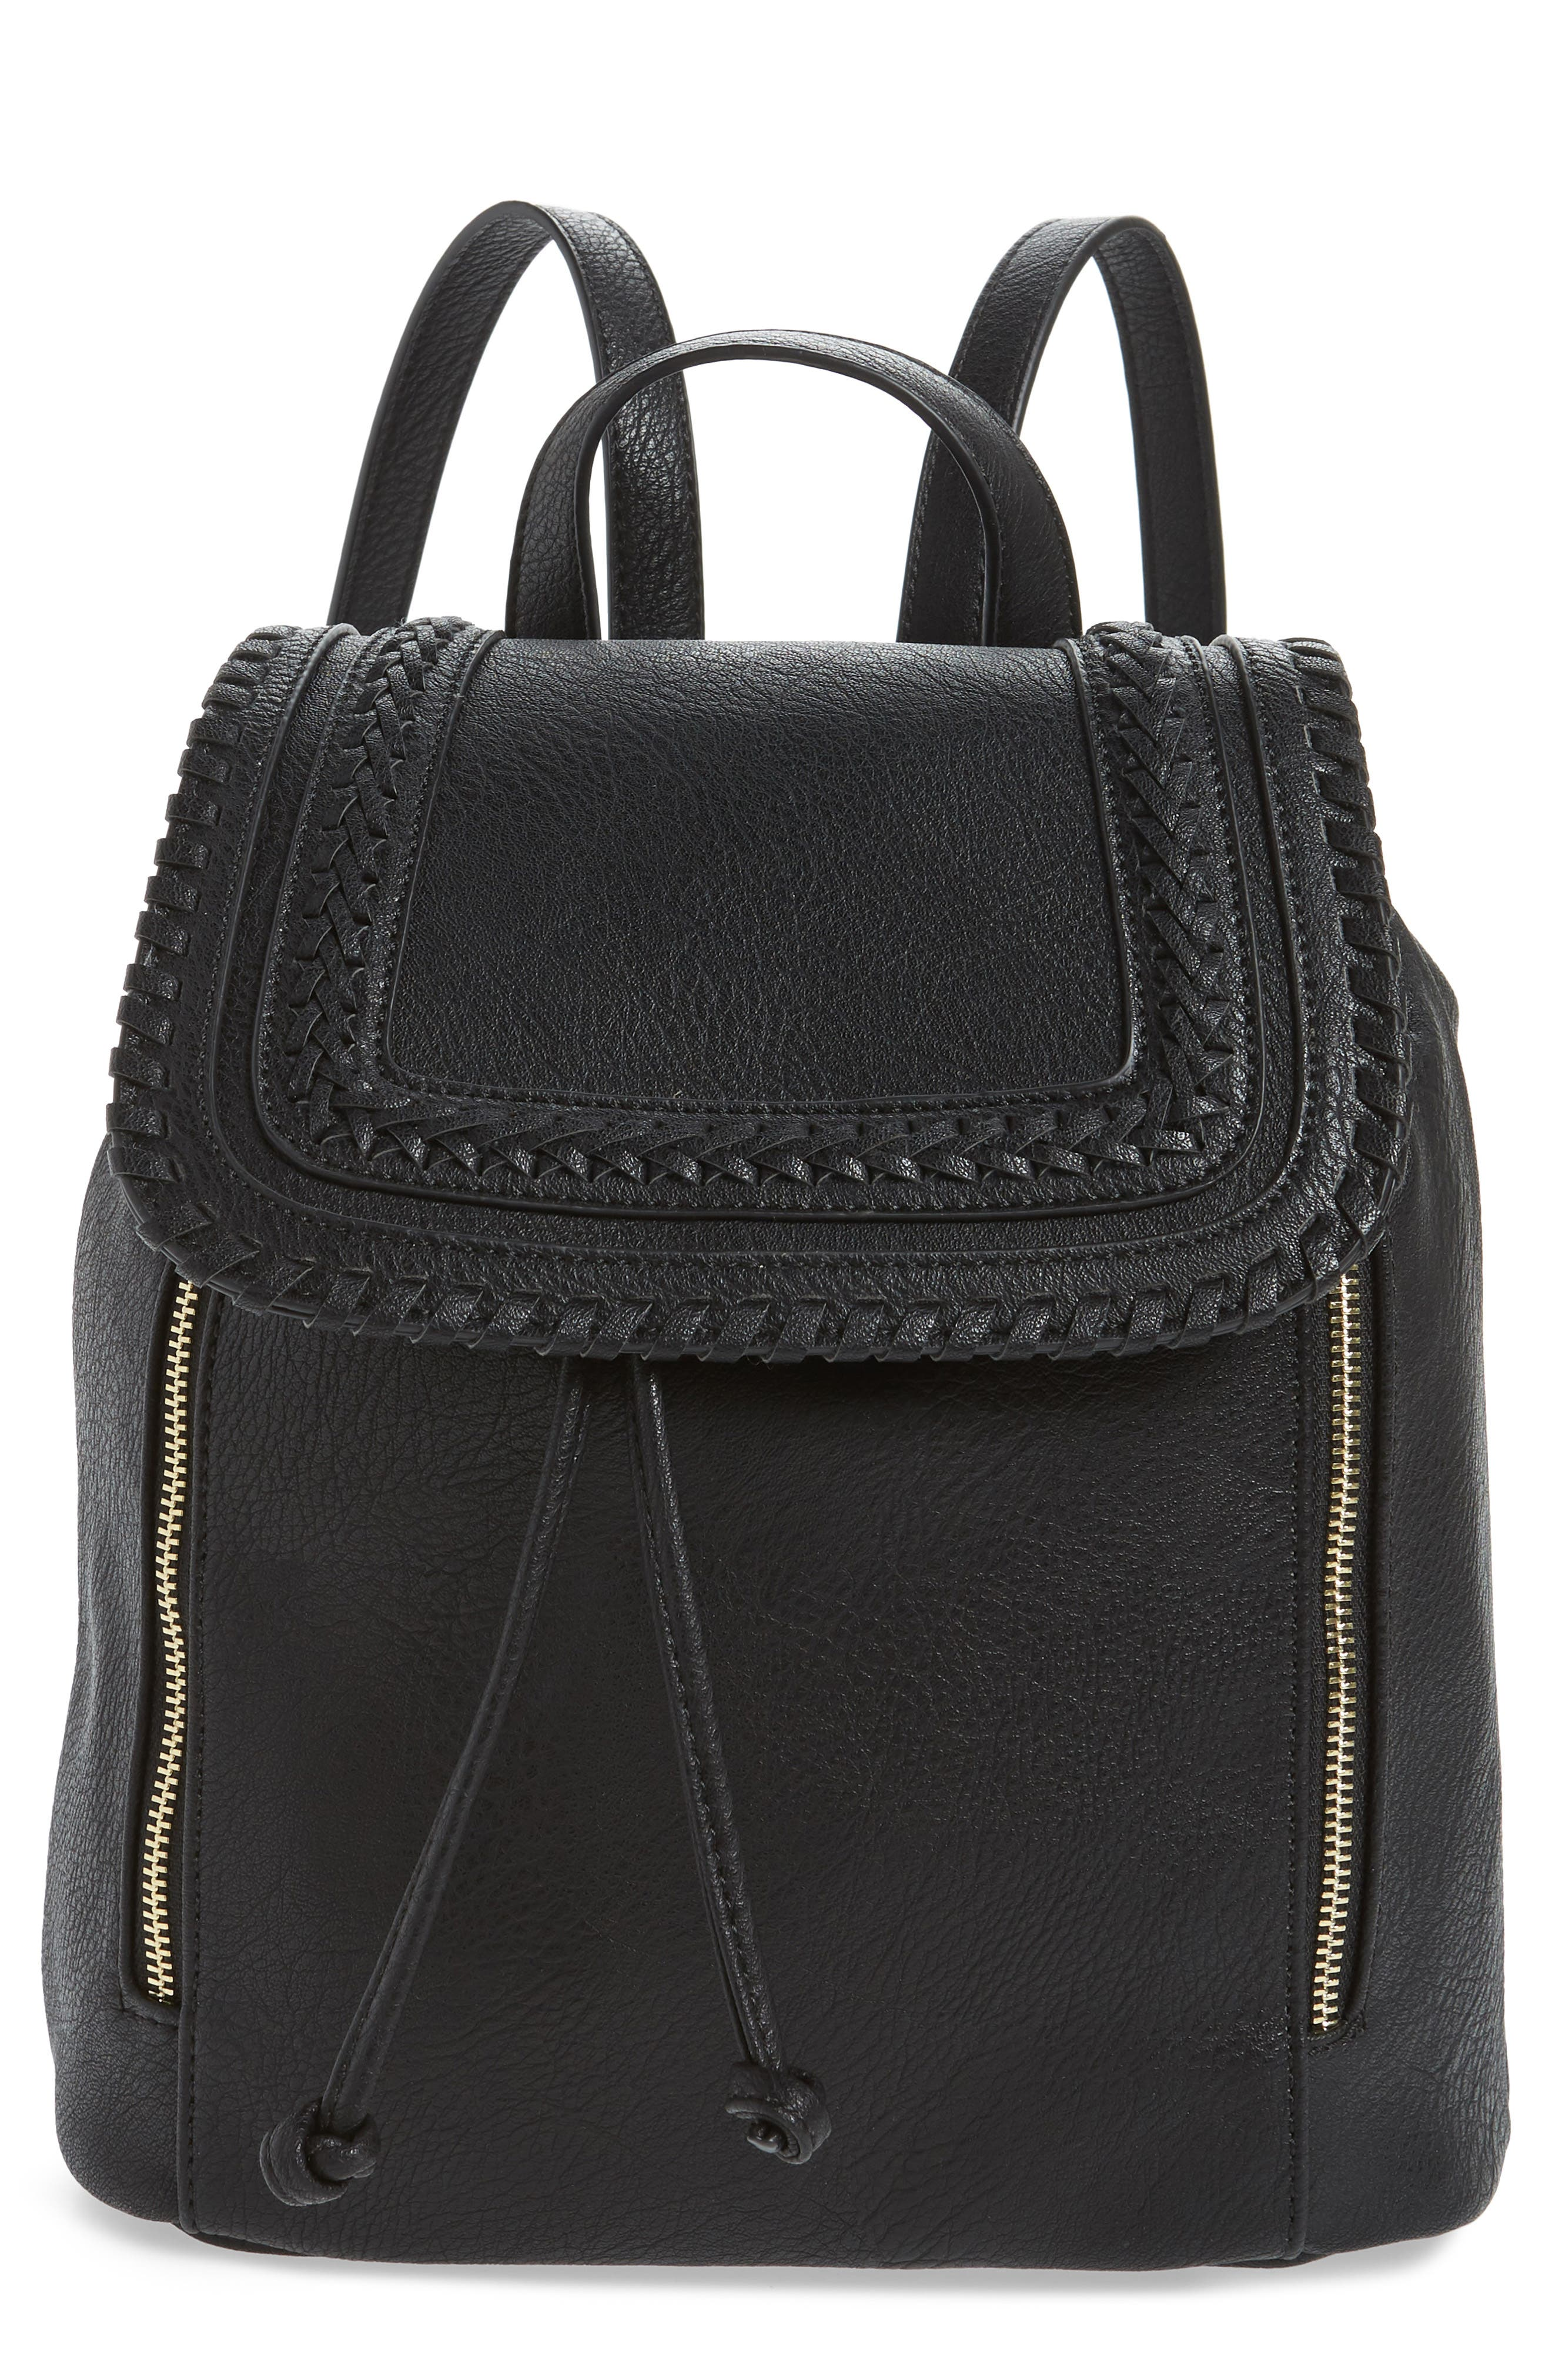 SOLE SOCIETY, Destin Faux Leather Backpack, Main thumbnail 1, color, BLACK